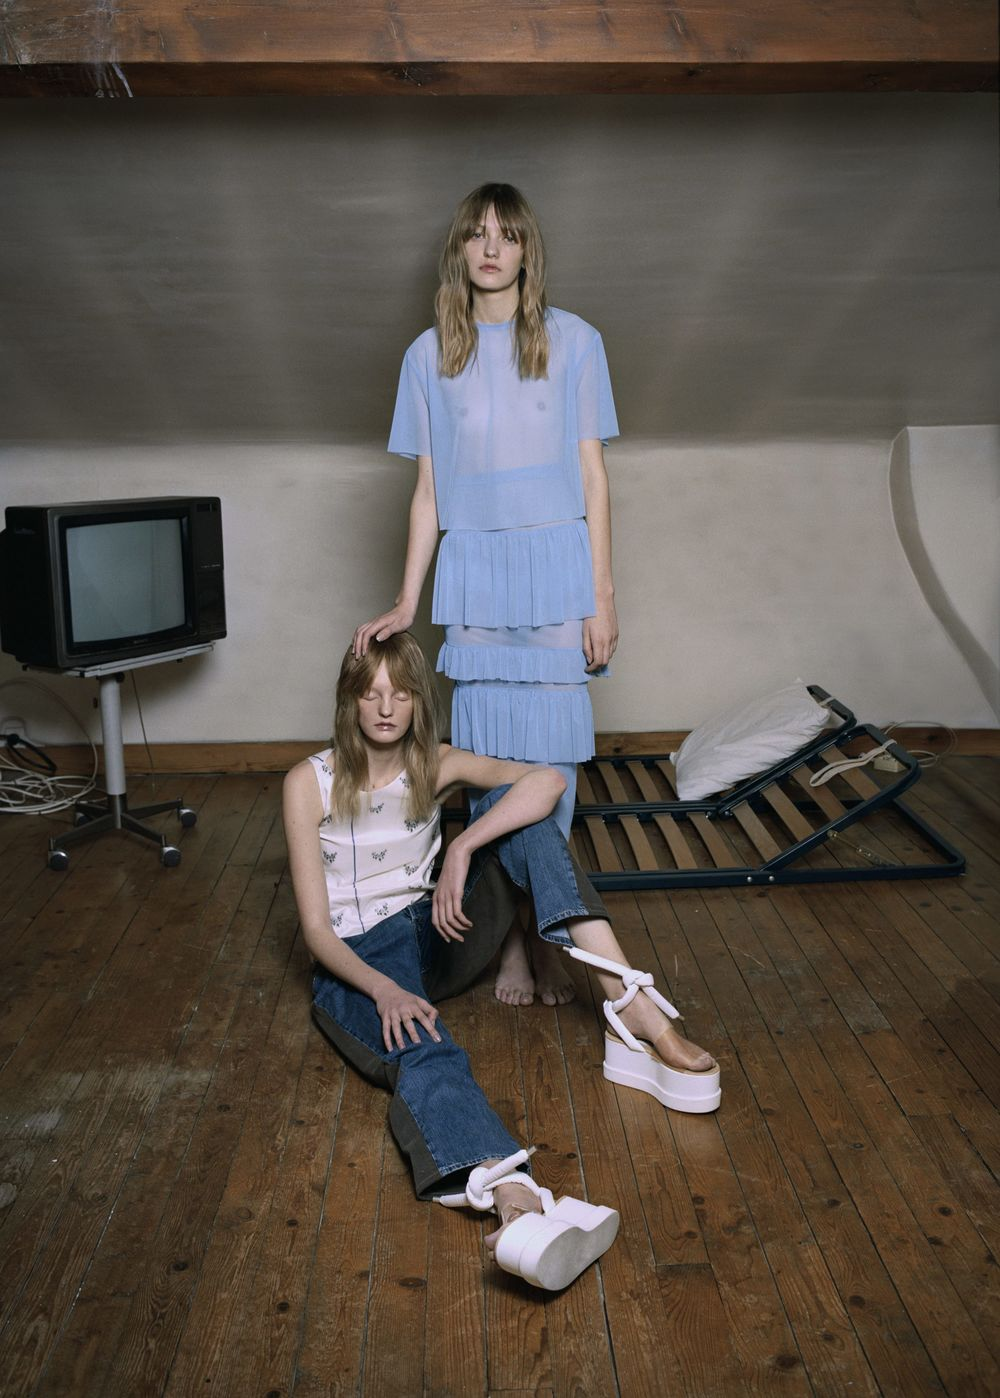 Powder blue fishnet ensemble  LÉA PECKRE,  floral print taffeta blouse  DIOR,  two-toned denim trousers  BLESS,  white wedges  MM6 MAISON MARTIN MARGIELA.